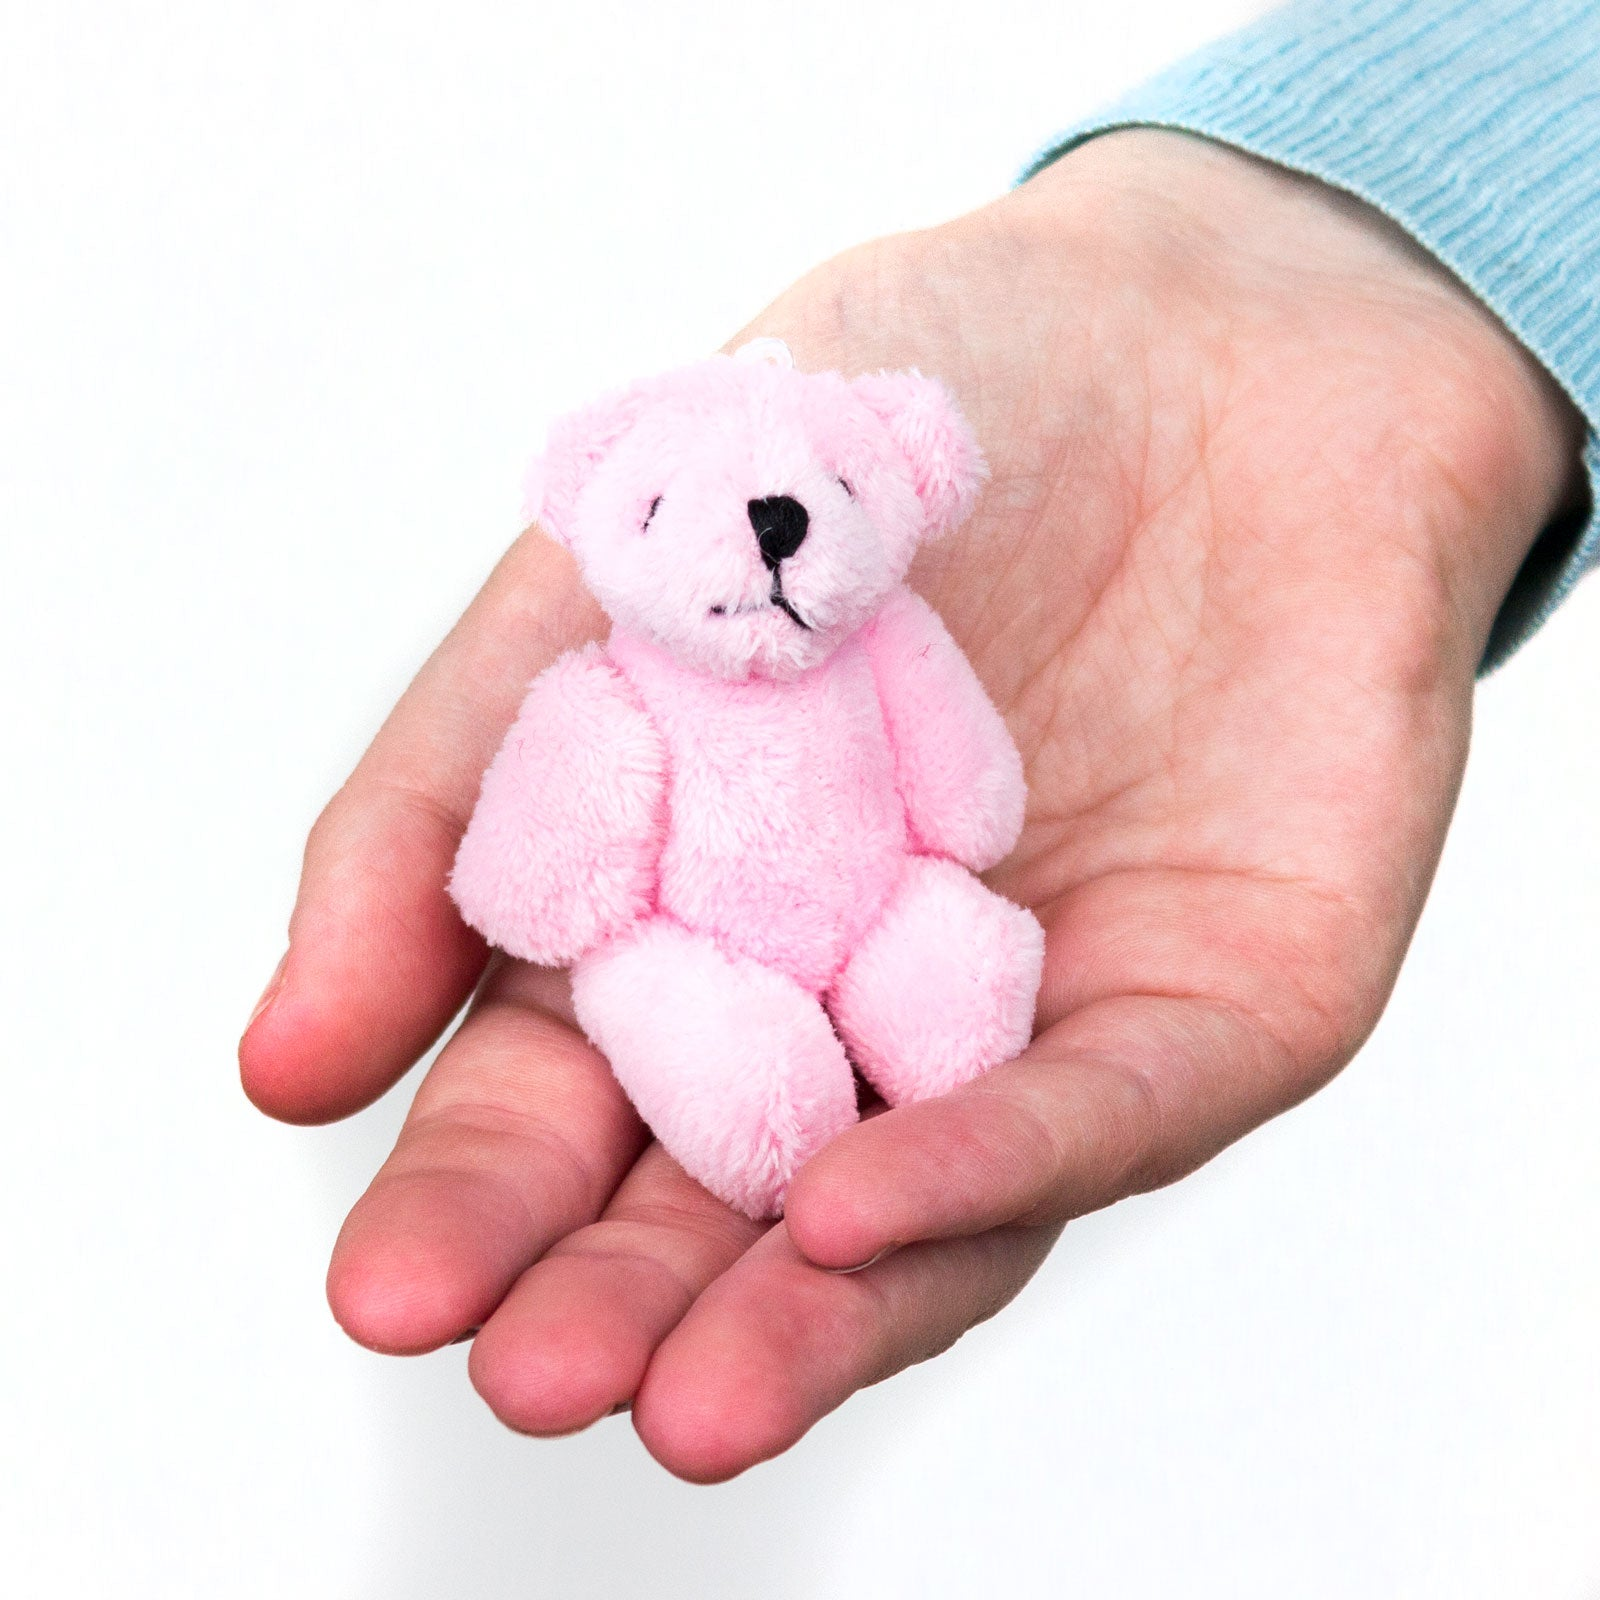 Small PINK Teddy Bears X 35 - Cute Soft Adorable